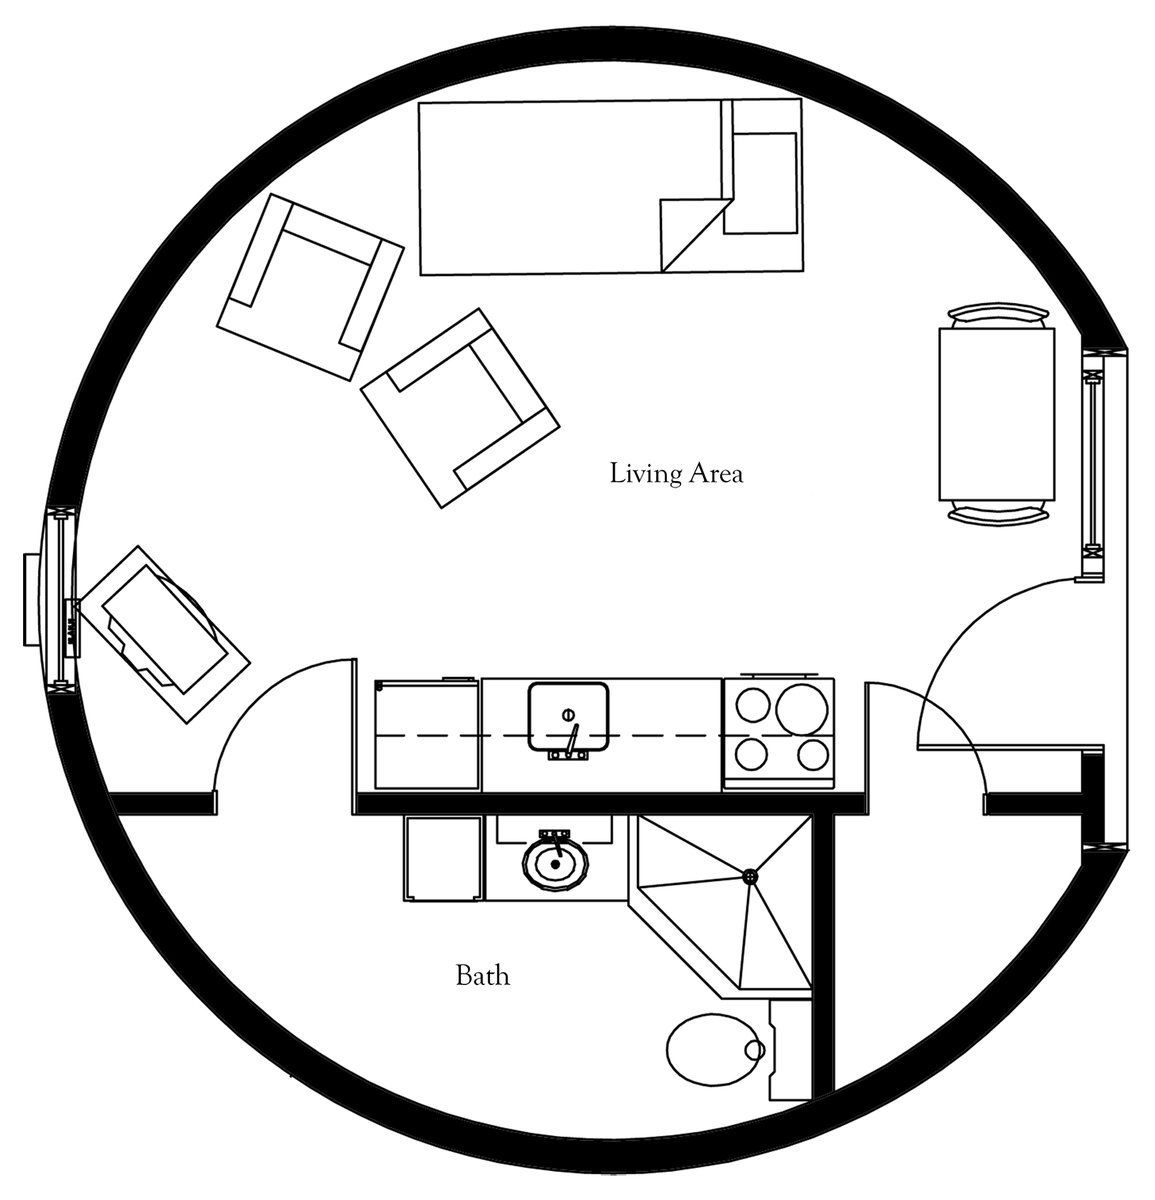 Dome Home Design Ideas: Plan Number: DL2001 Floor Area: 314 Square Feet Diameter